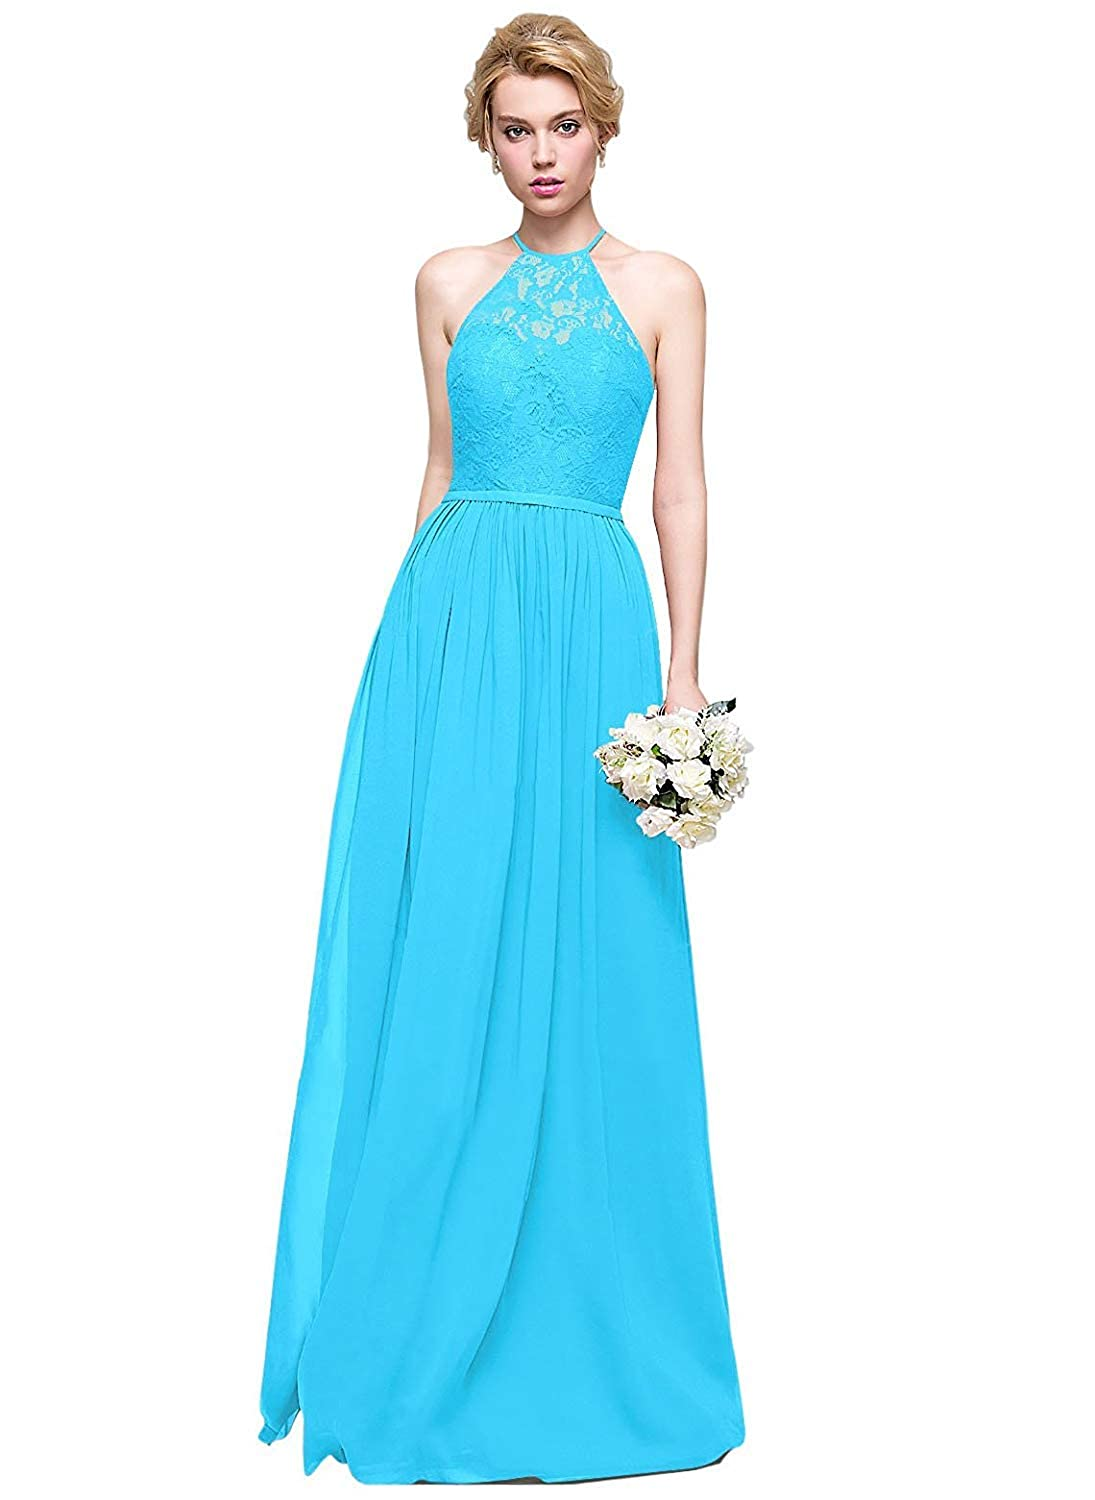 bluee Halter Lace Sweetheart Neck Bridesmaid Dresses Long Prom Evening Gown